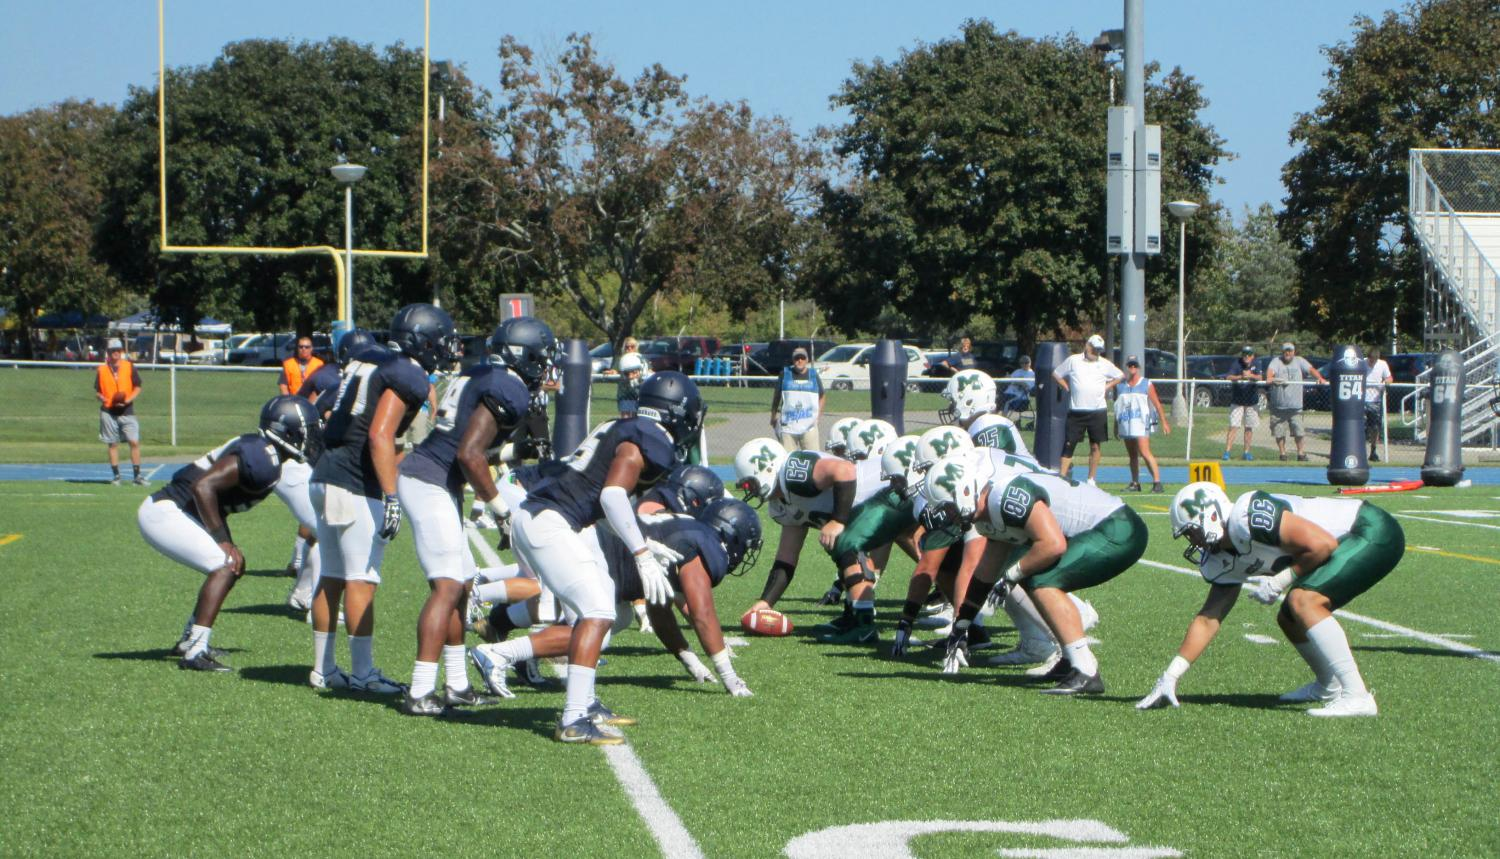 The Lakers offense gets ready to snap the ball during late second quarter. The Sept. 23 game against fellow PSAC West opponent Clarion University resulted in a 21-18 victory for the Lakers.